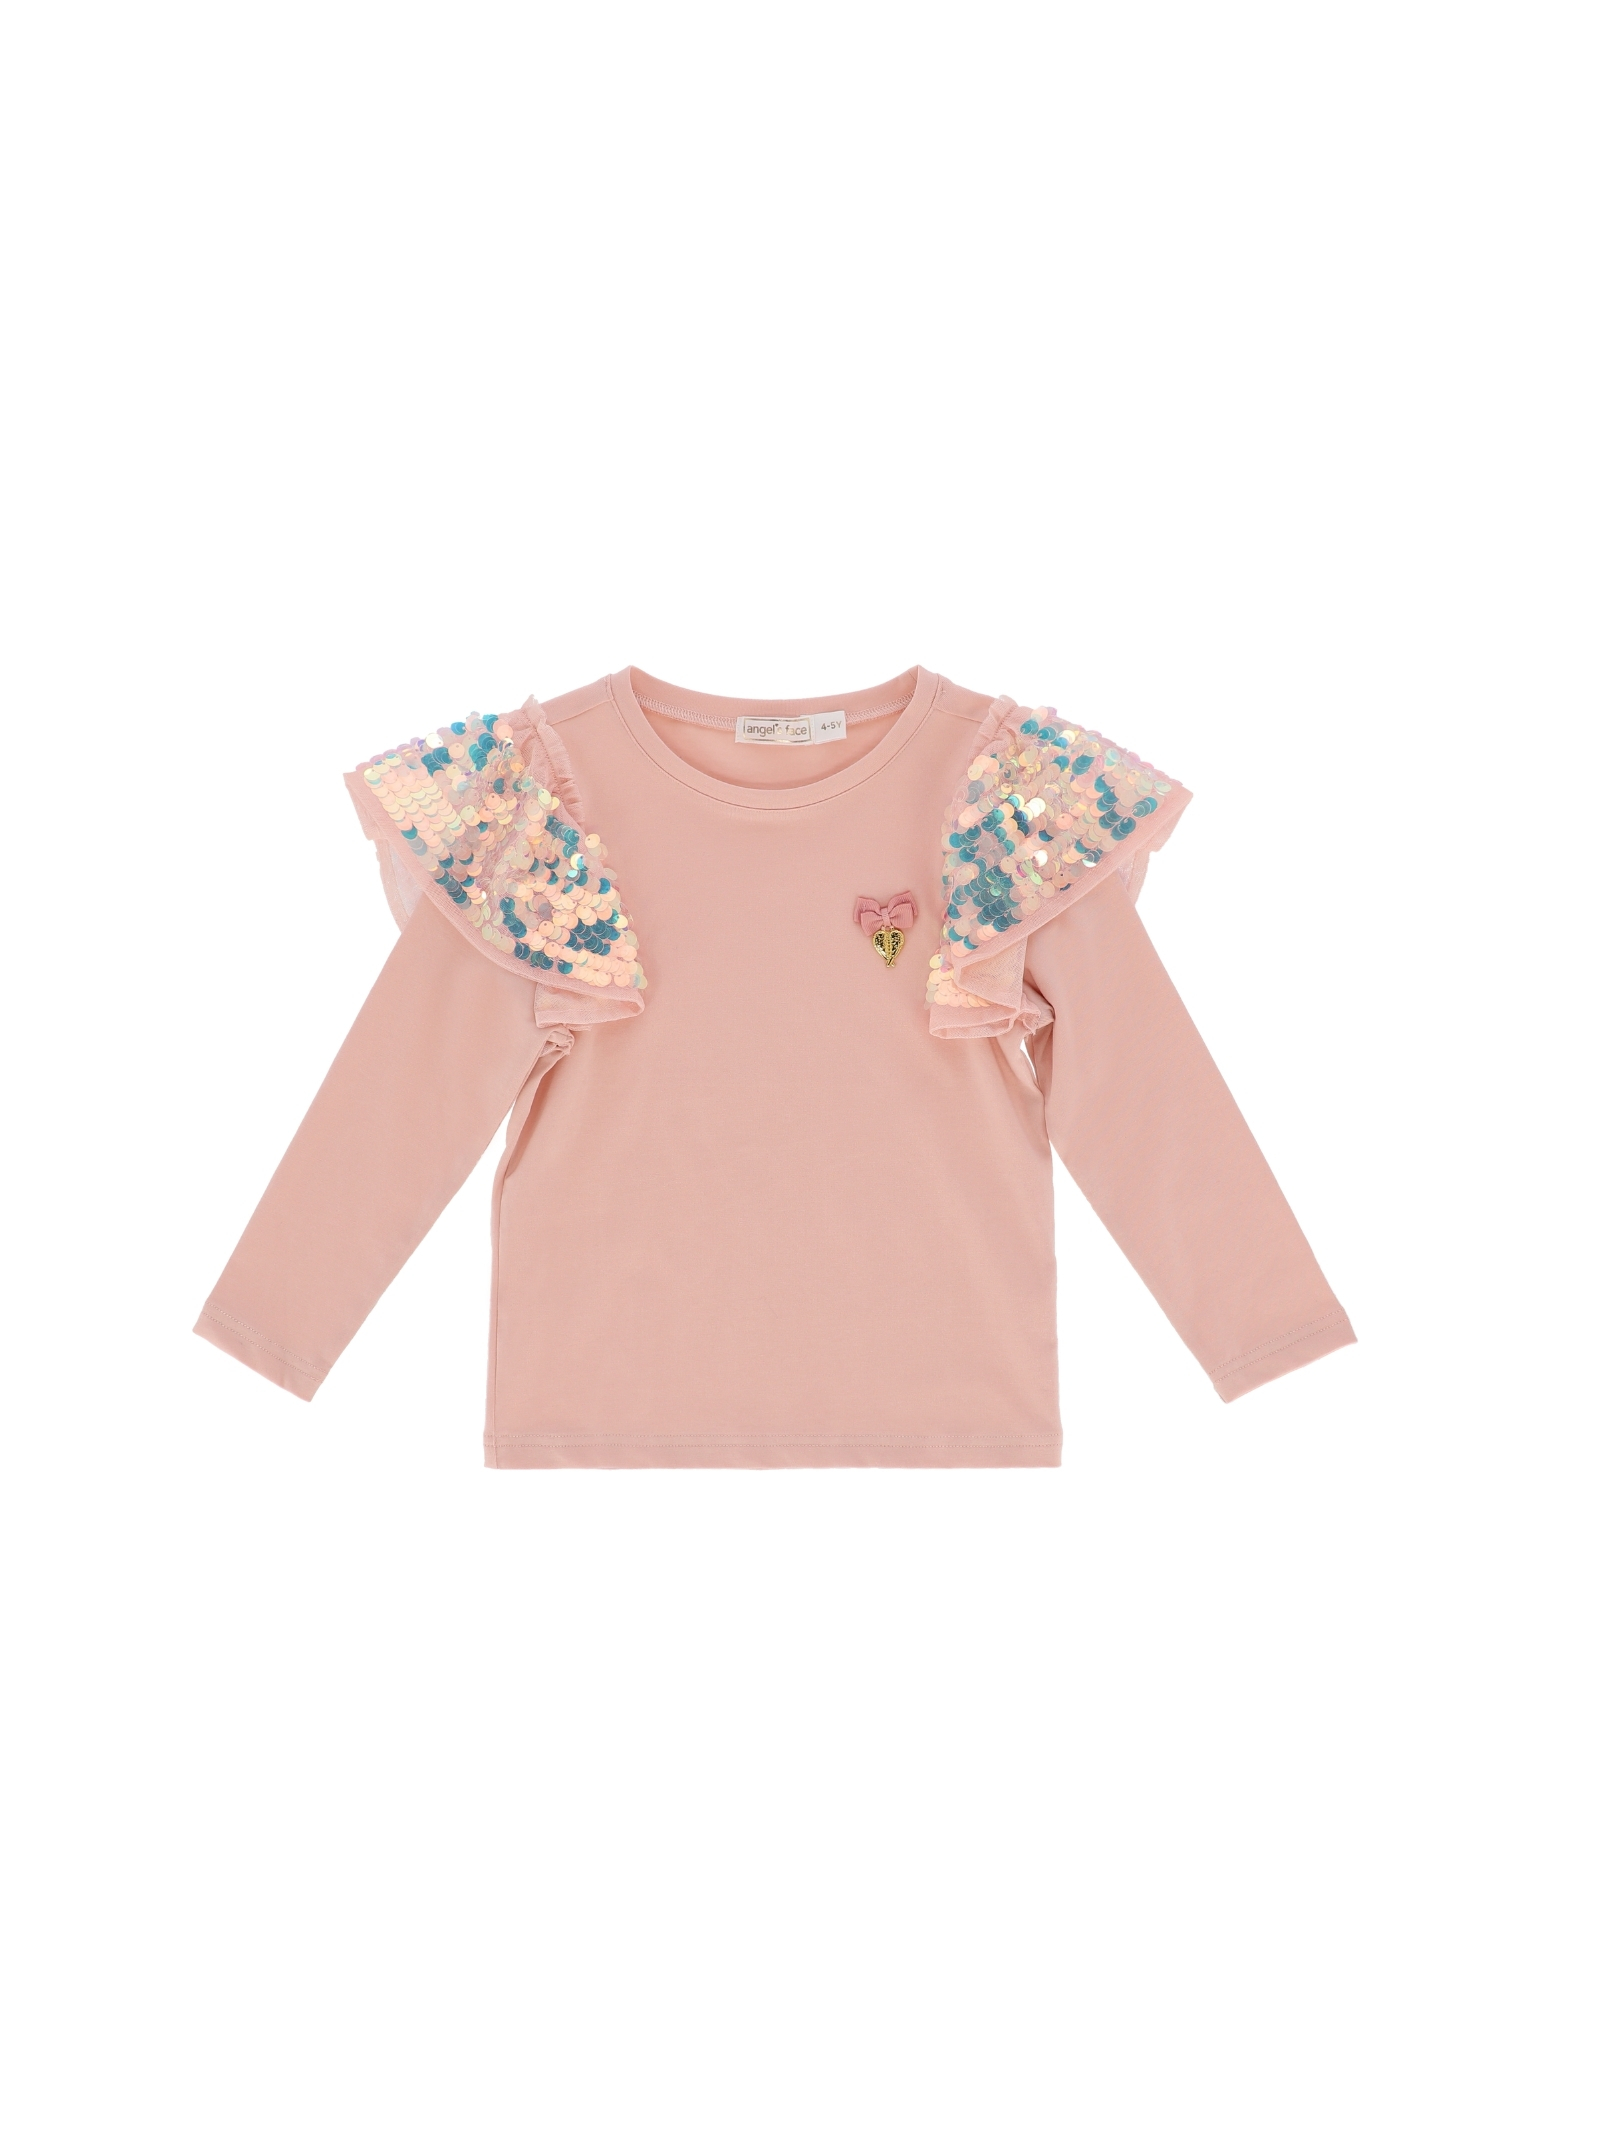 Cassia Paillettes Girl Sweater ANGEL'S FACE |  | CASSIABLUSH